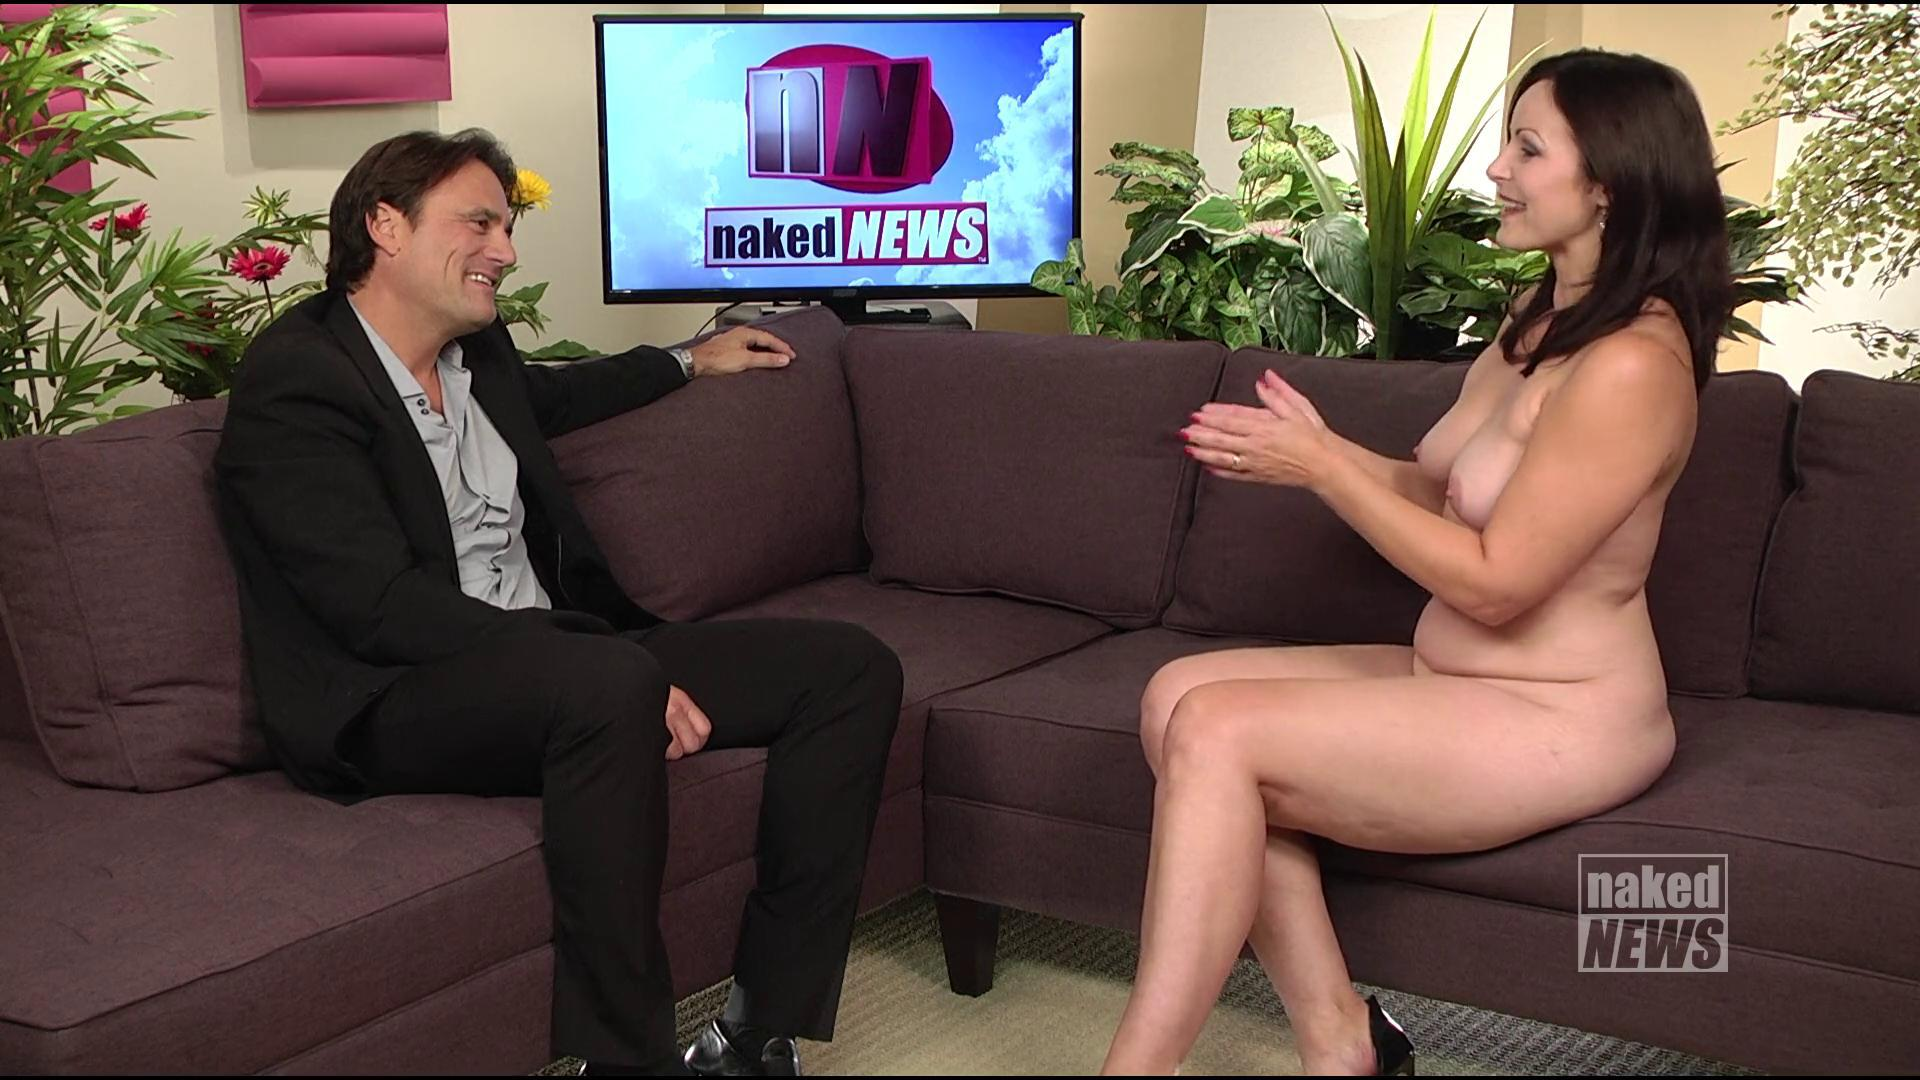 Naked News Interviews Mr. Skin! [VIDEO]